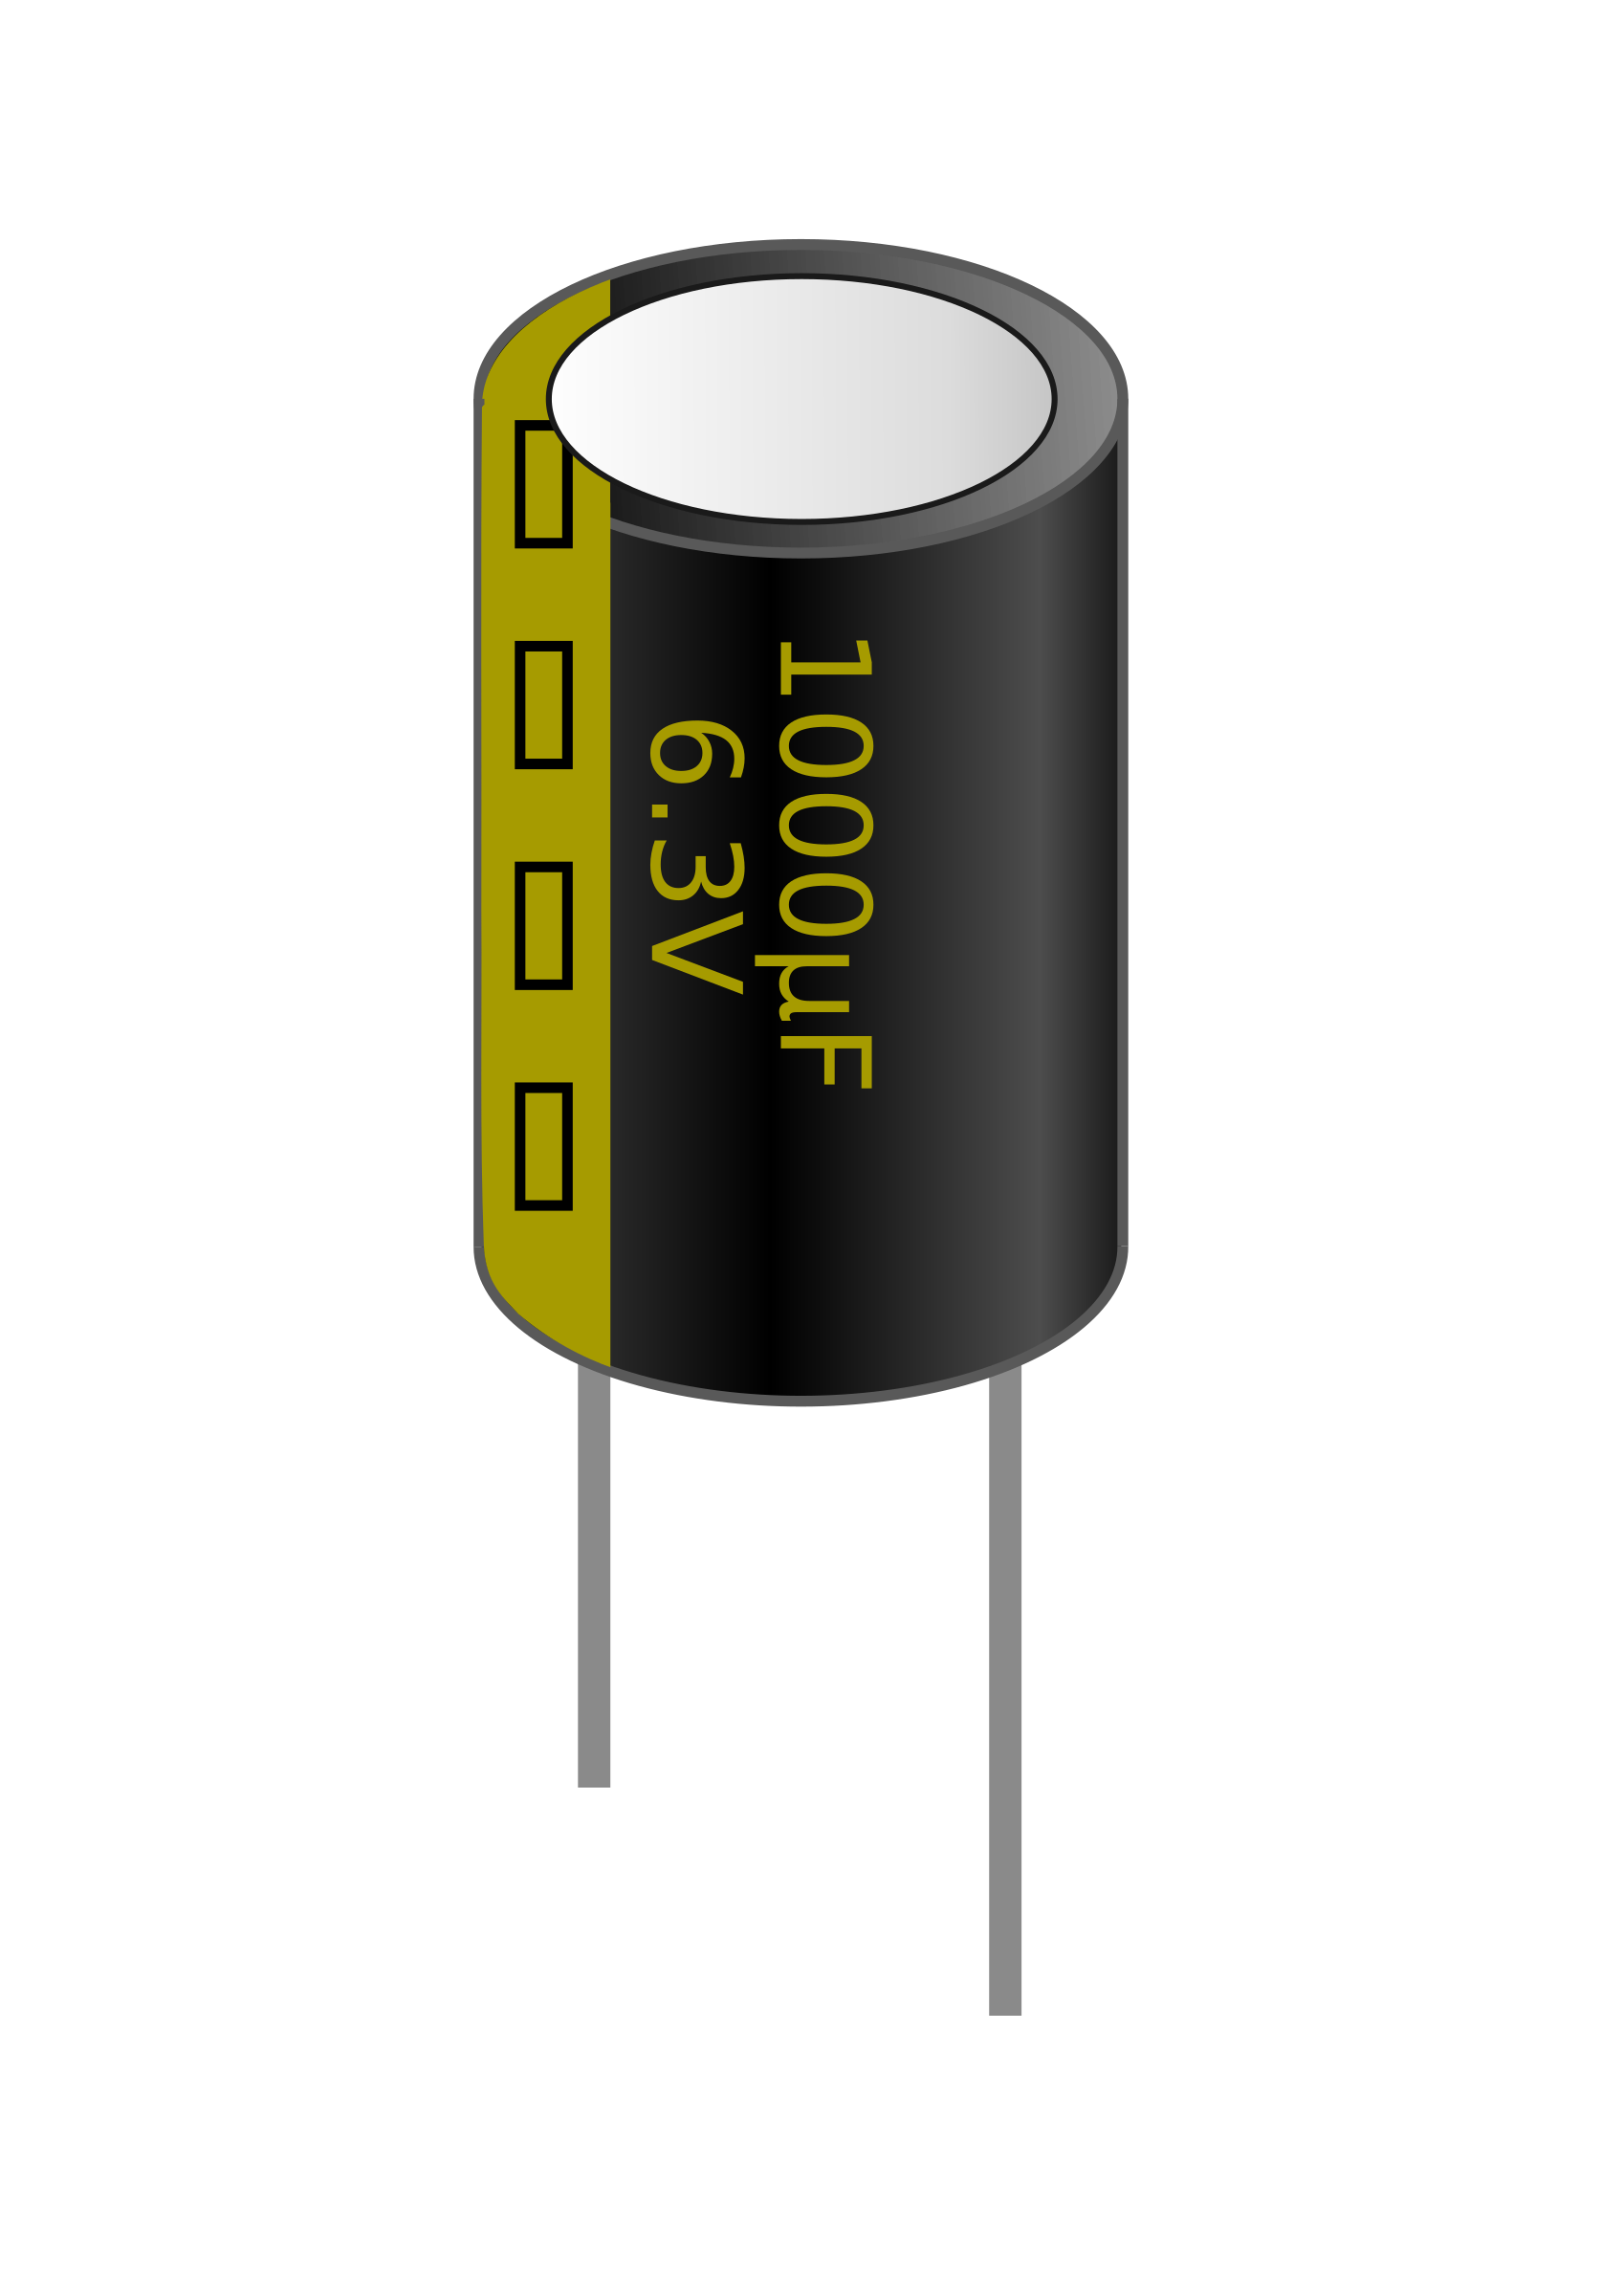 1000μF Electrolytic Capacitor by PacketCrash